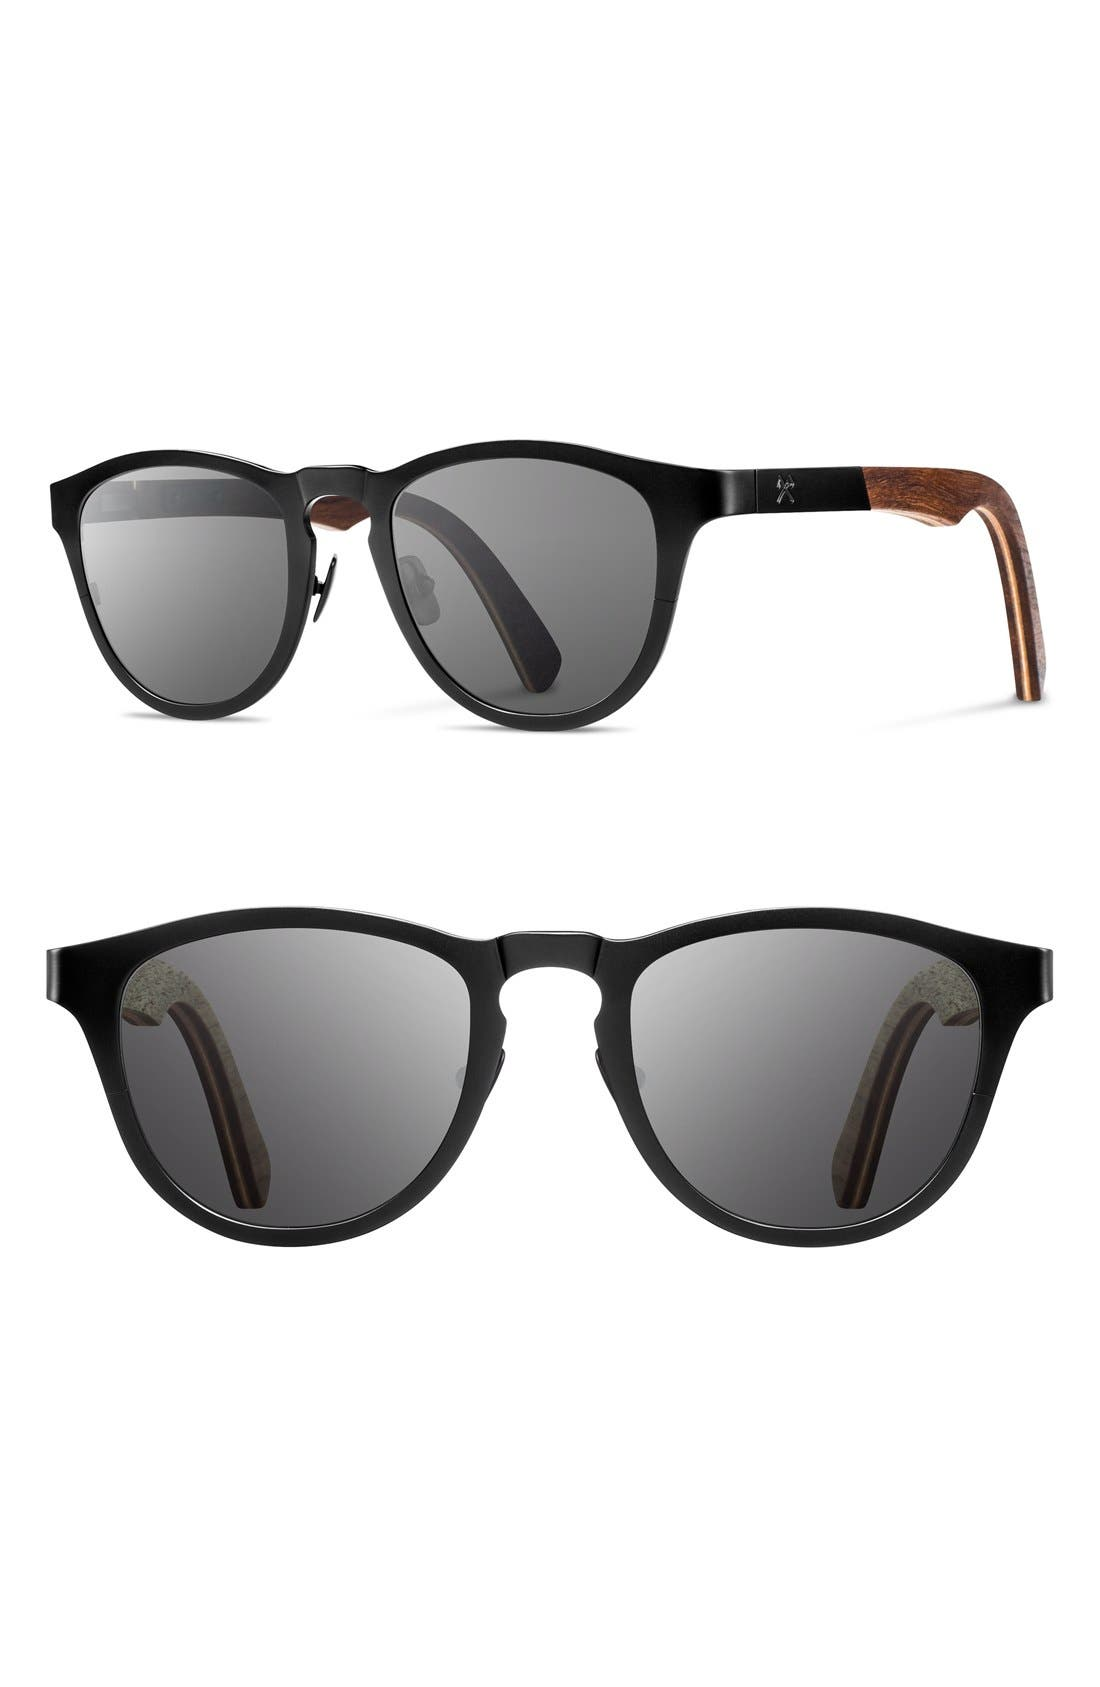 'Francis' 49mm Titanium & Wood Sunglasses,                         Main,                         color, Black/ Walnut